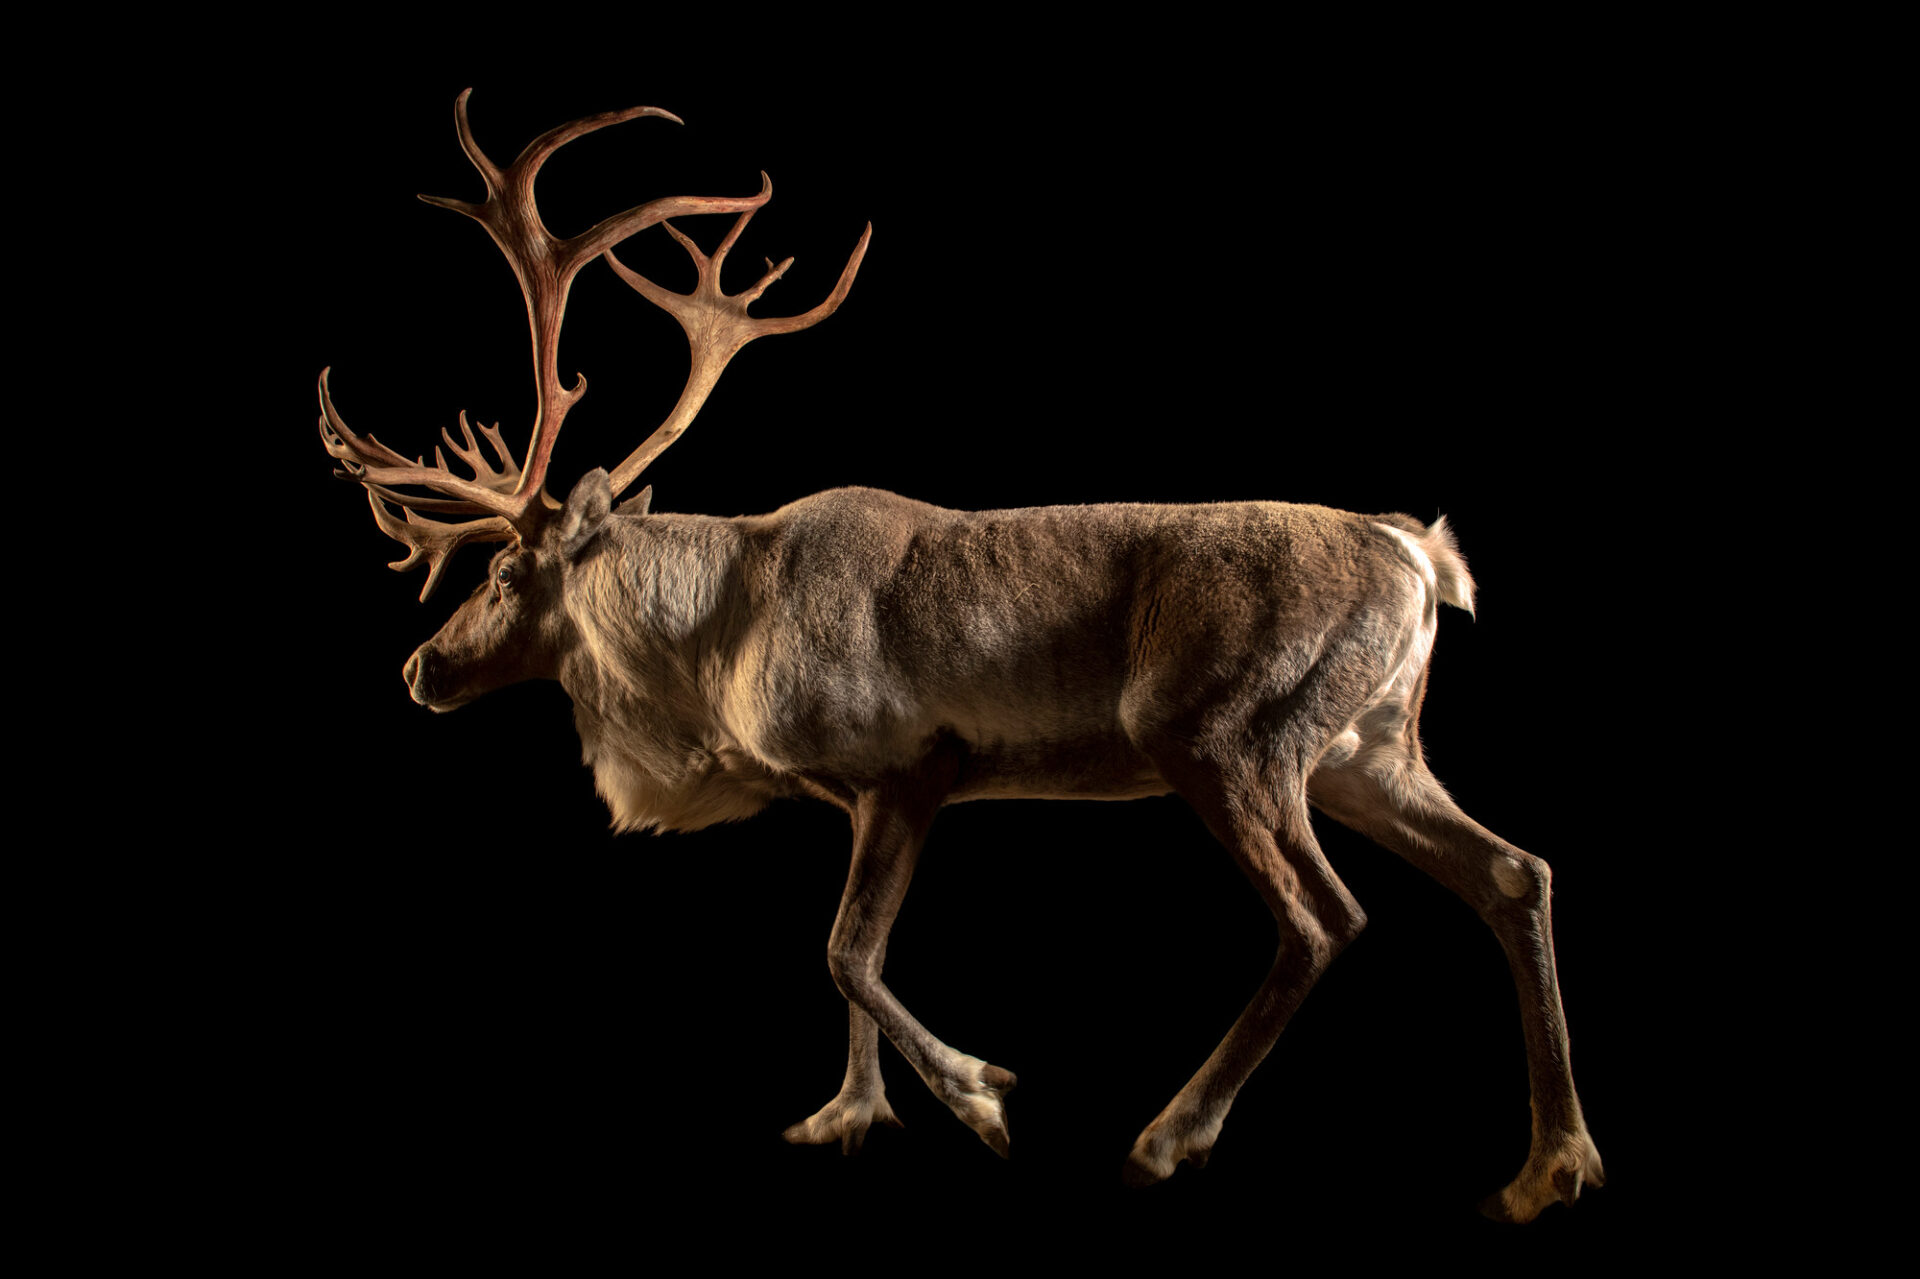 Photo: A Finnish forest reindeer (Rangifer tarandus fennicus) at Berlin Zoo in Berlin, Germany.